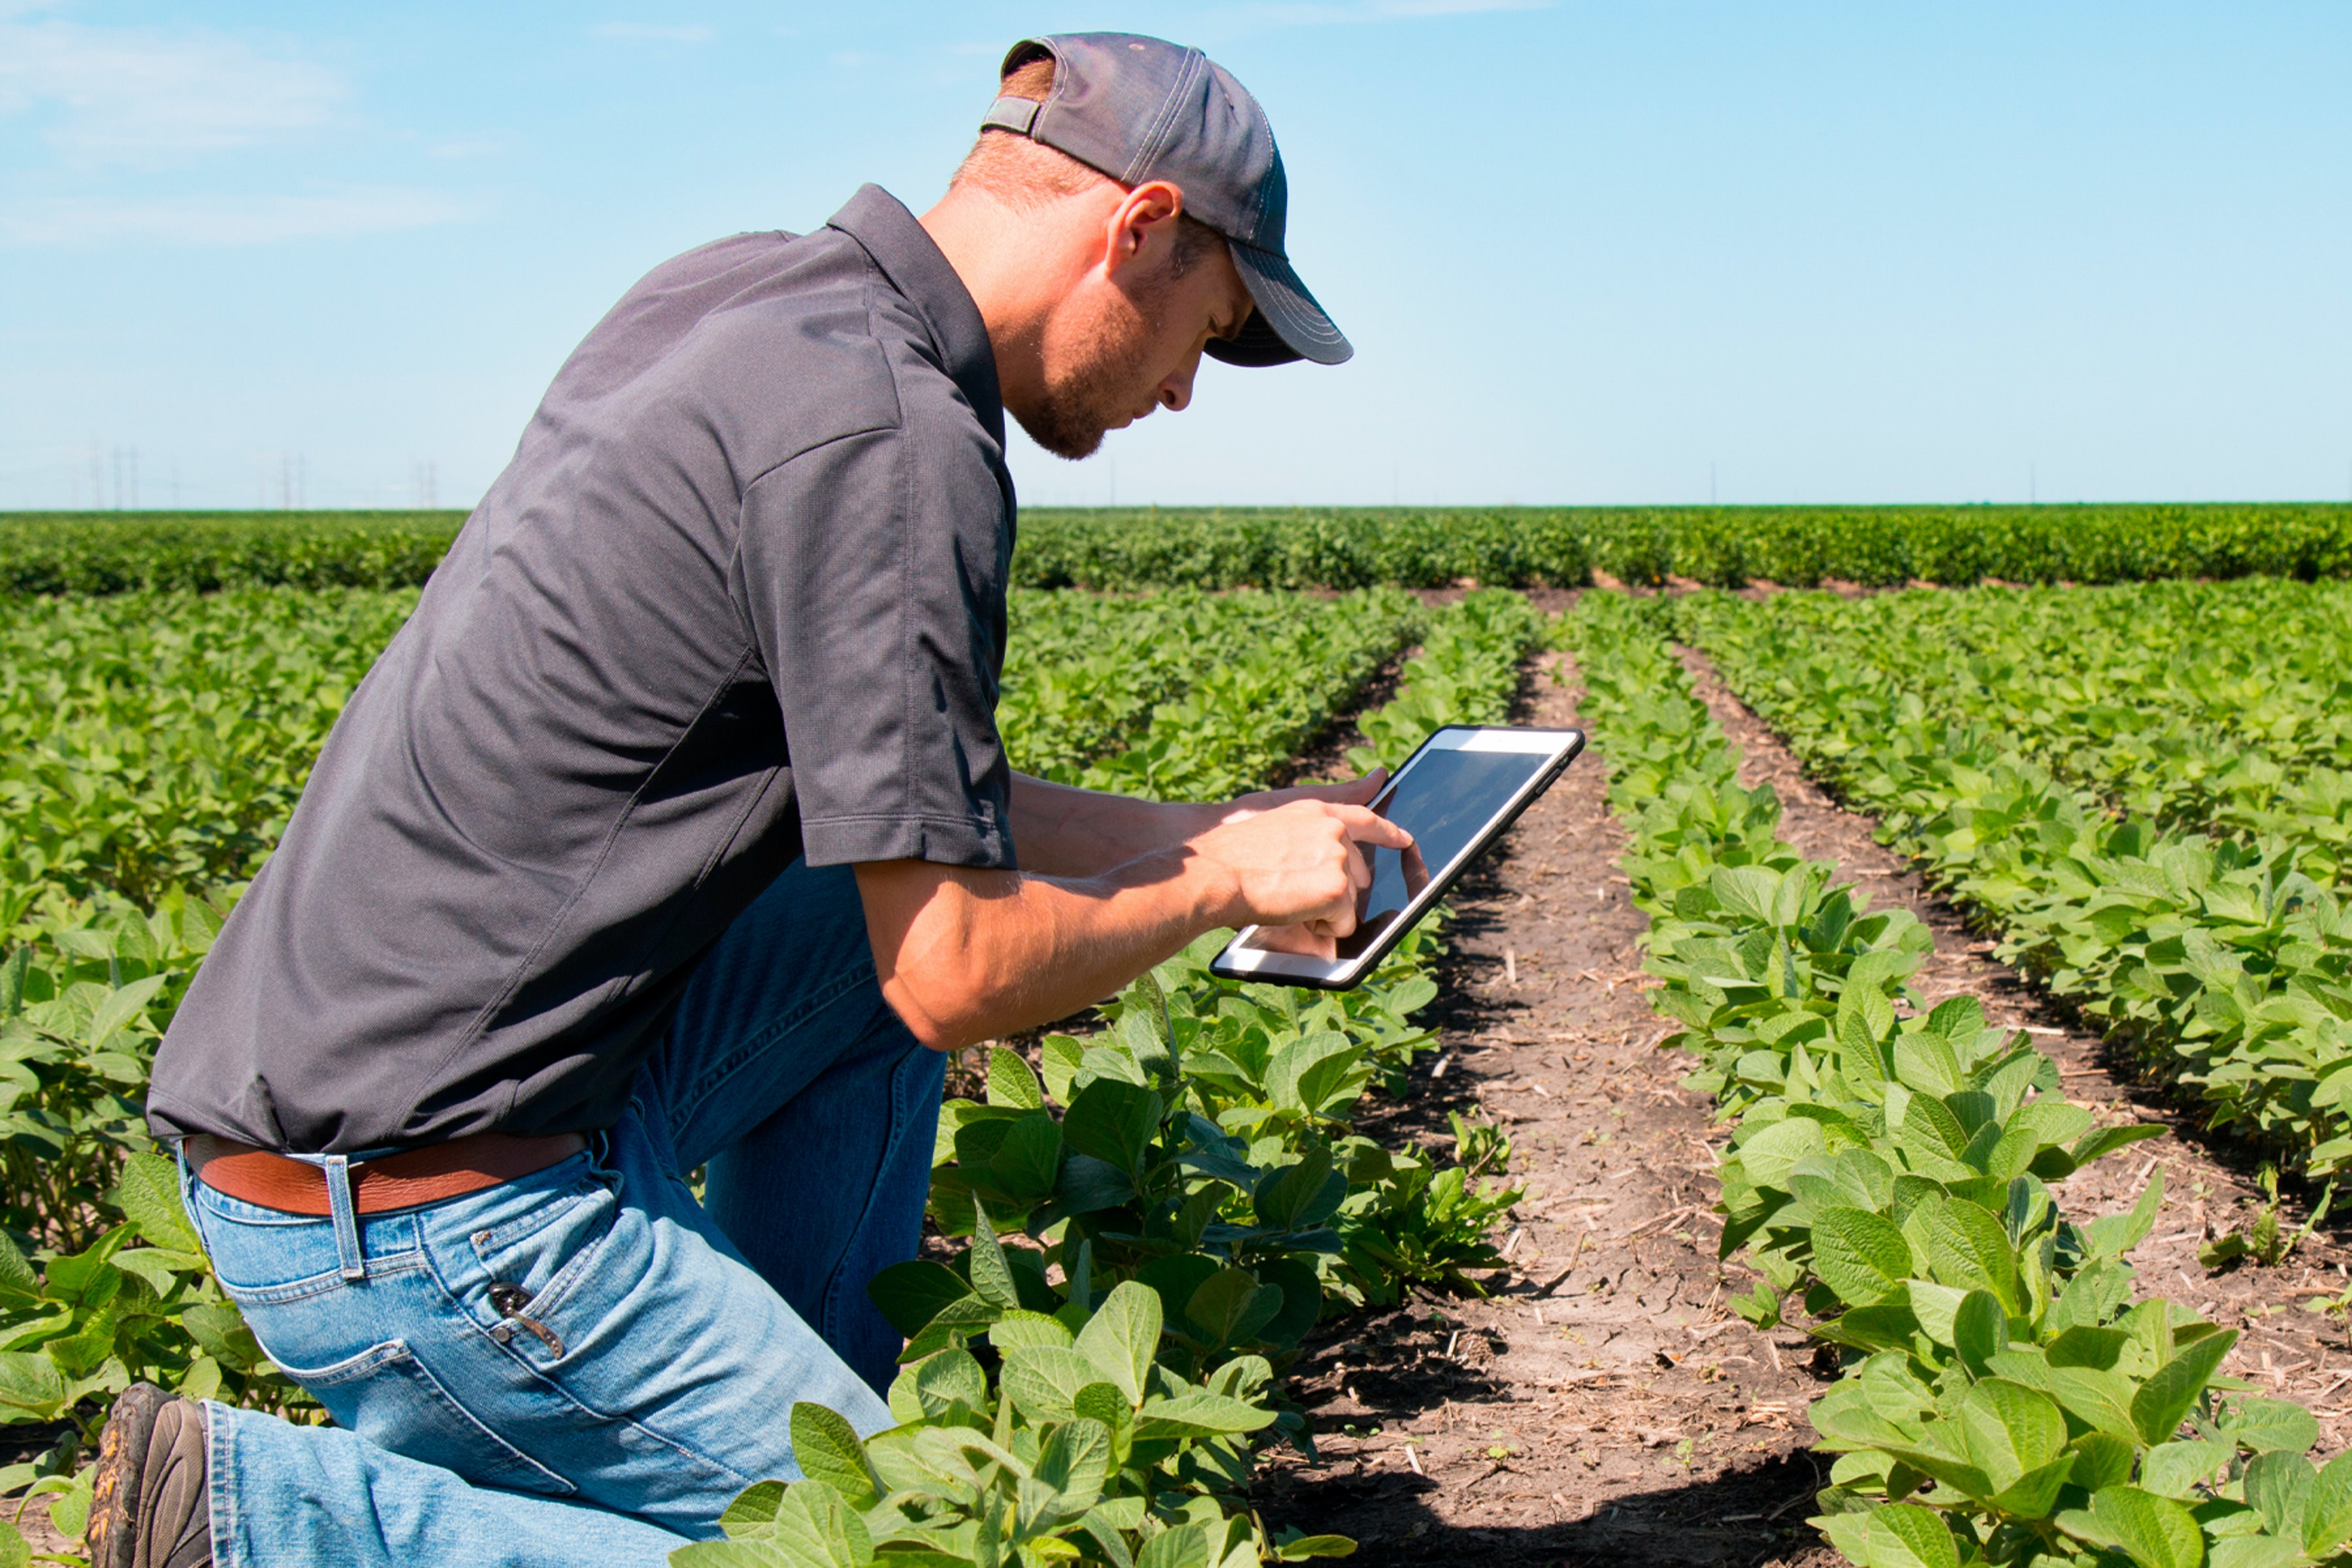 man using tablet in a field full of crops